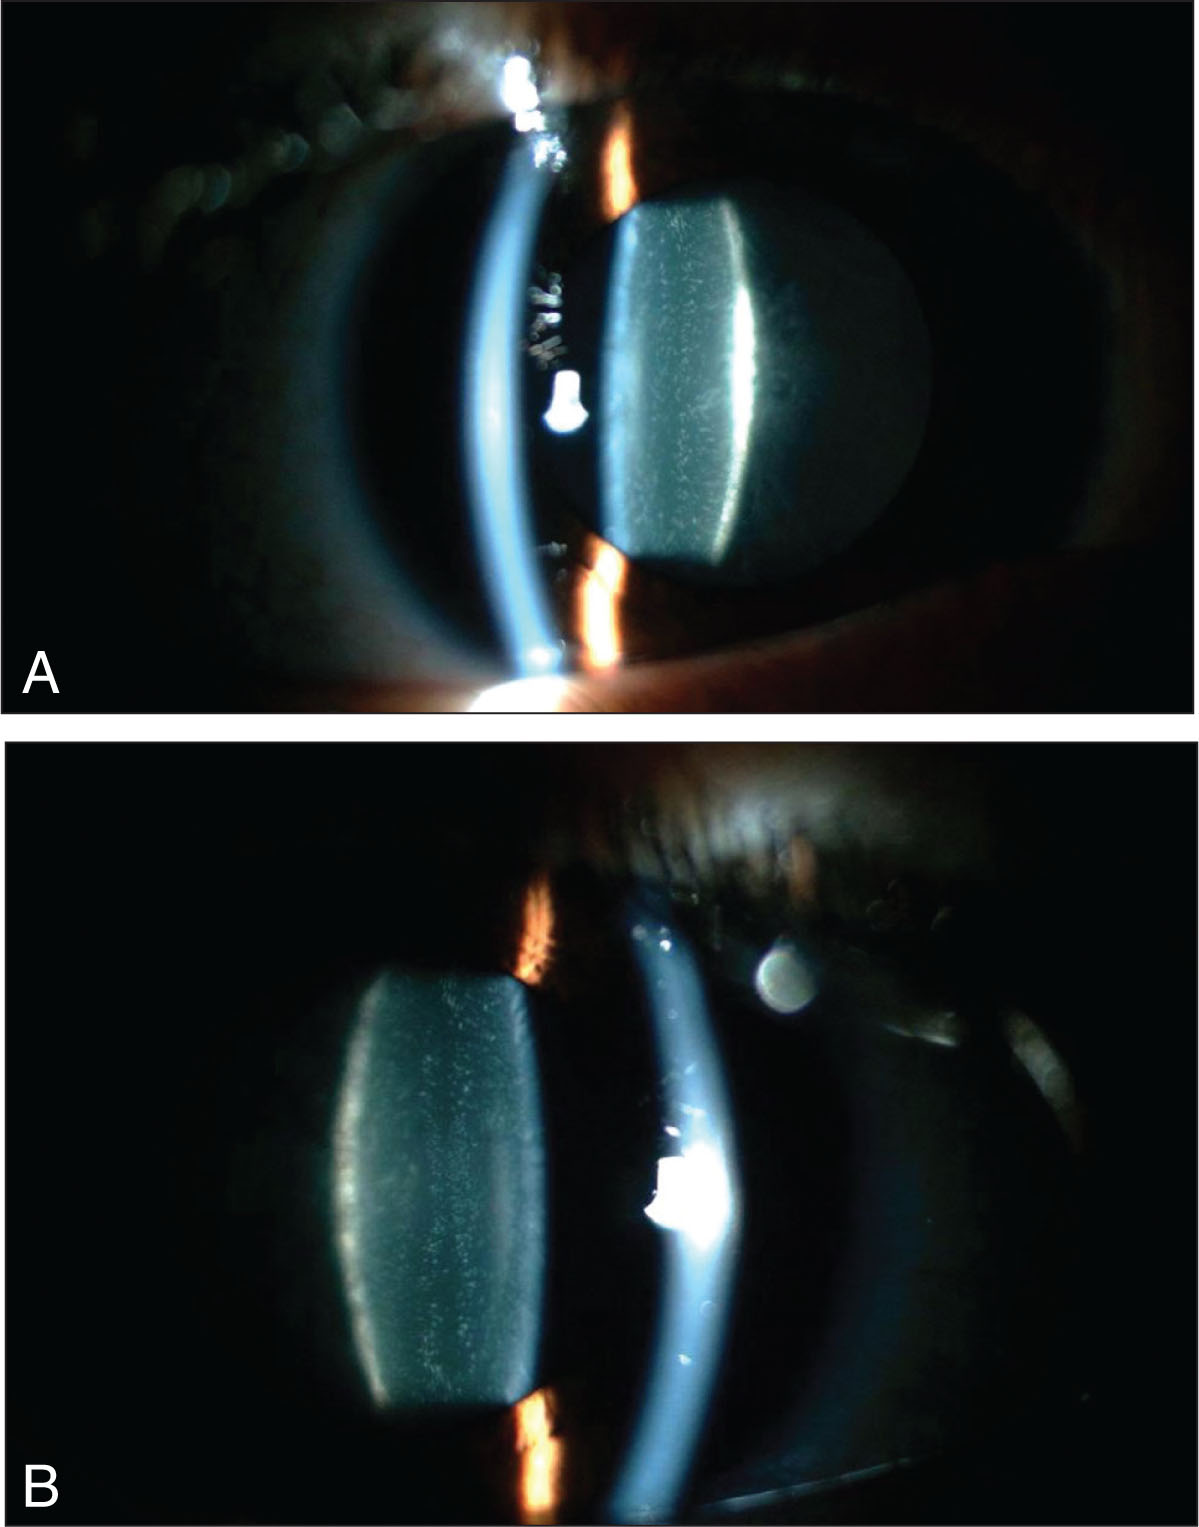 A 10-Year-Old Boy with Poorly Controlled Insulin-Dependent Diabetes Mellitus Complained of Decreasing Vision for Both Distance and near over the Previous Year. He Had No Family History for Juvenile Cataract and Was Taking No Medication Other than Insulin. Best-Corrected Visual Acuity Was 20/60 in Each Eye. Ophthalmic Examination Was Significant Bilaterally for Fine Punctate Opacities Throughout the Lens and Posterior Subcapsular Cataract. Both the Right (A) and Left (B) Eyes Are Shown.